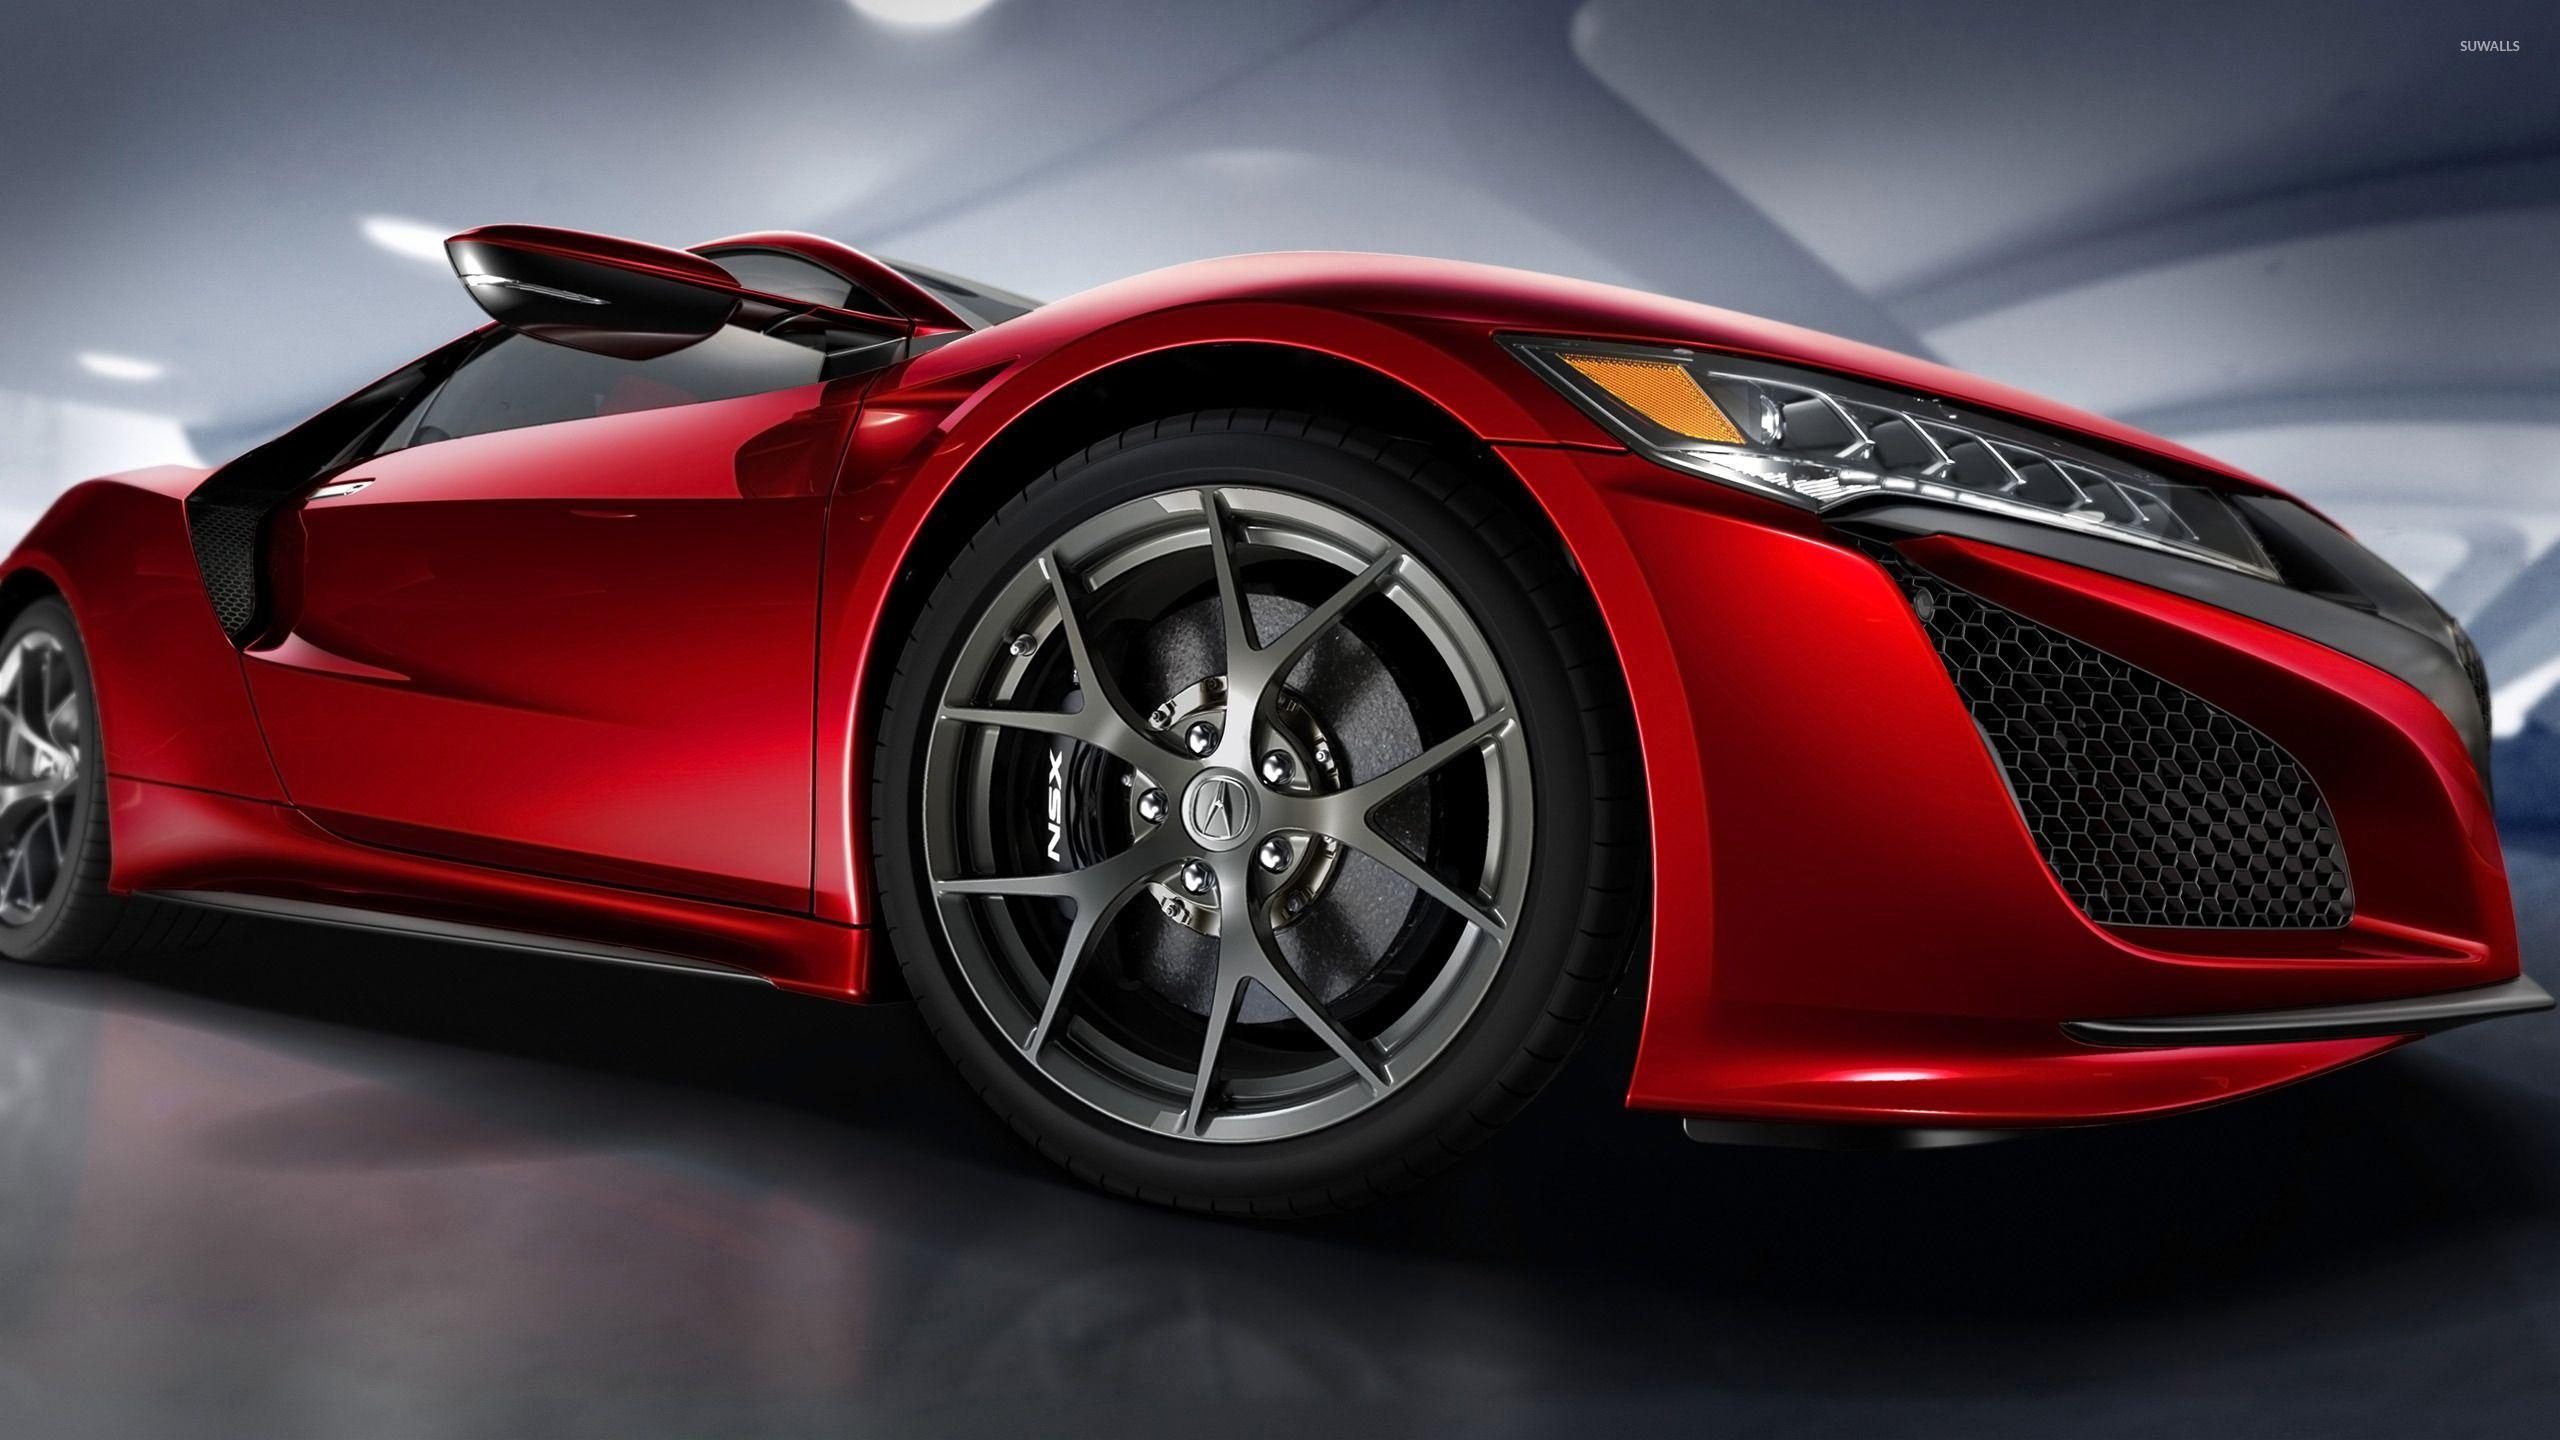 Acura NSX [3] wallpaper - Car wallpapers - #46894